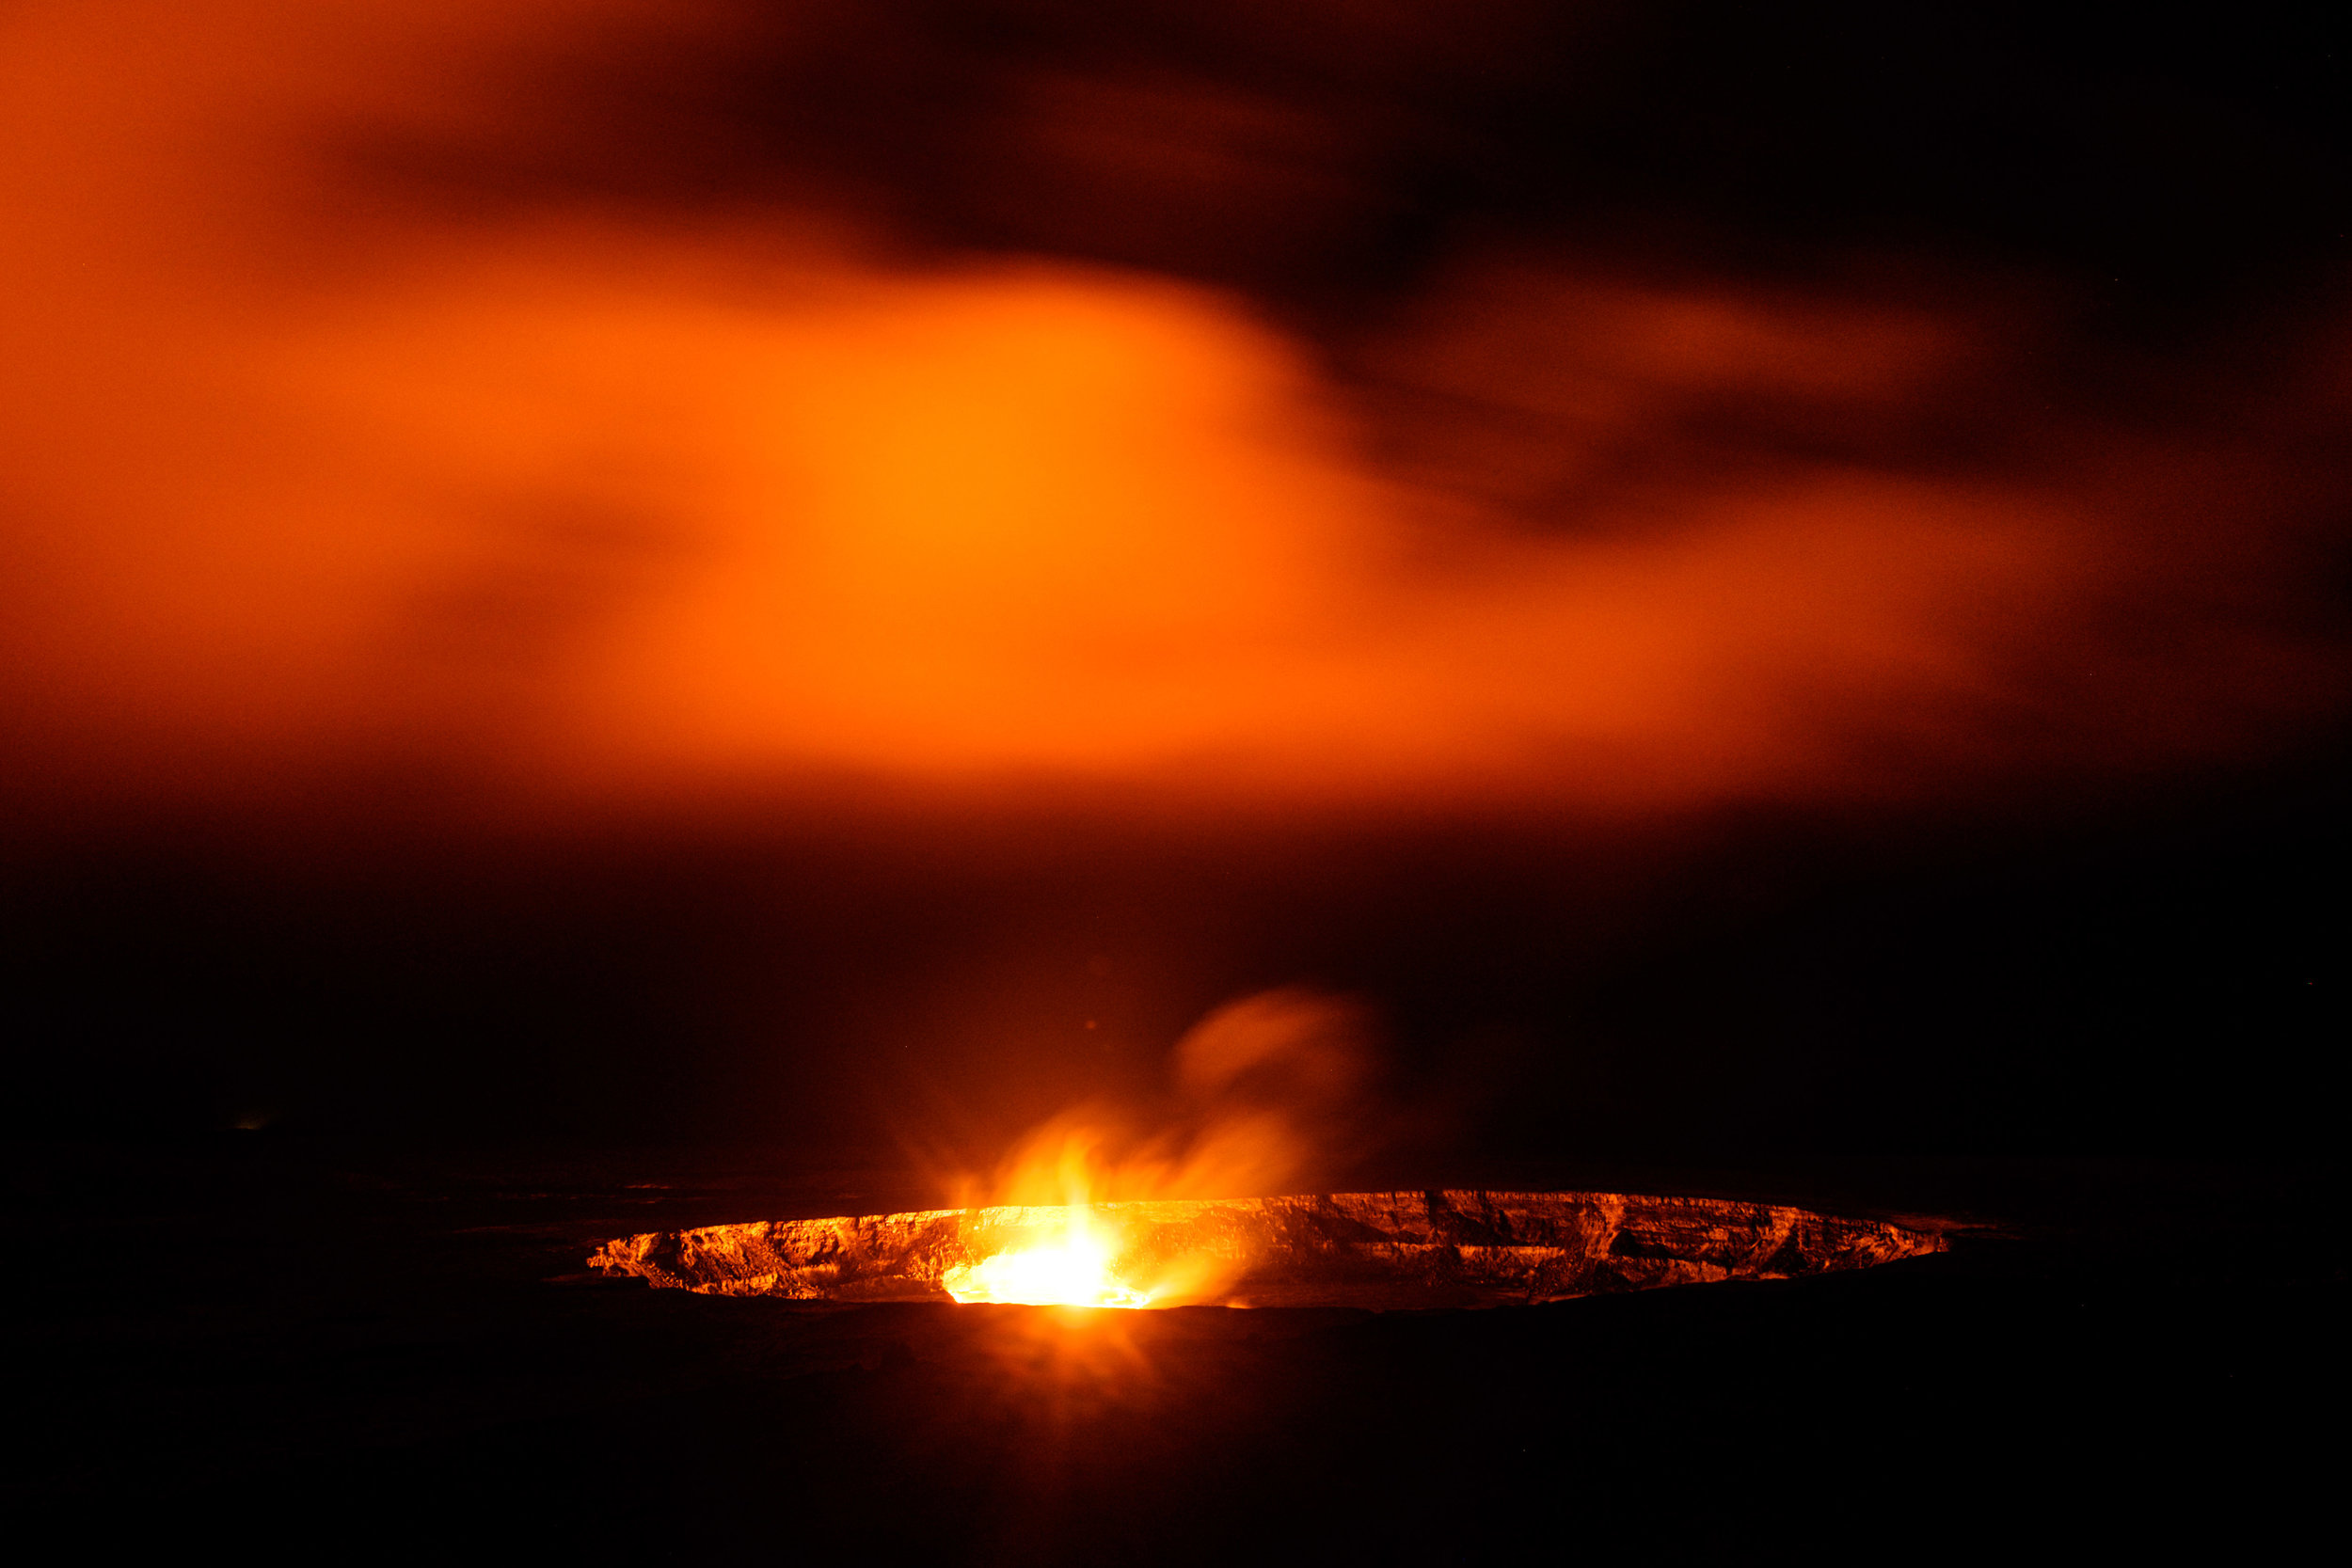 What a cool capture of the nightglow of the Halema'uma'u crater.